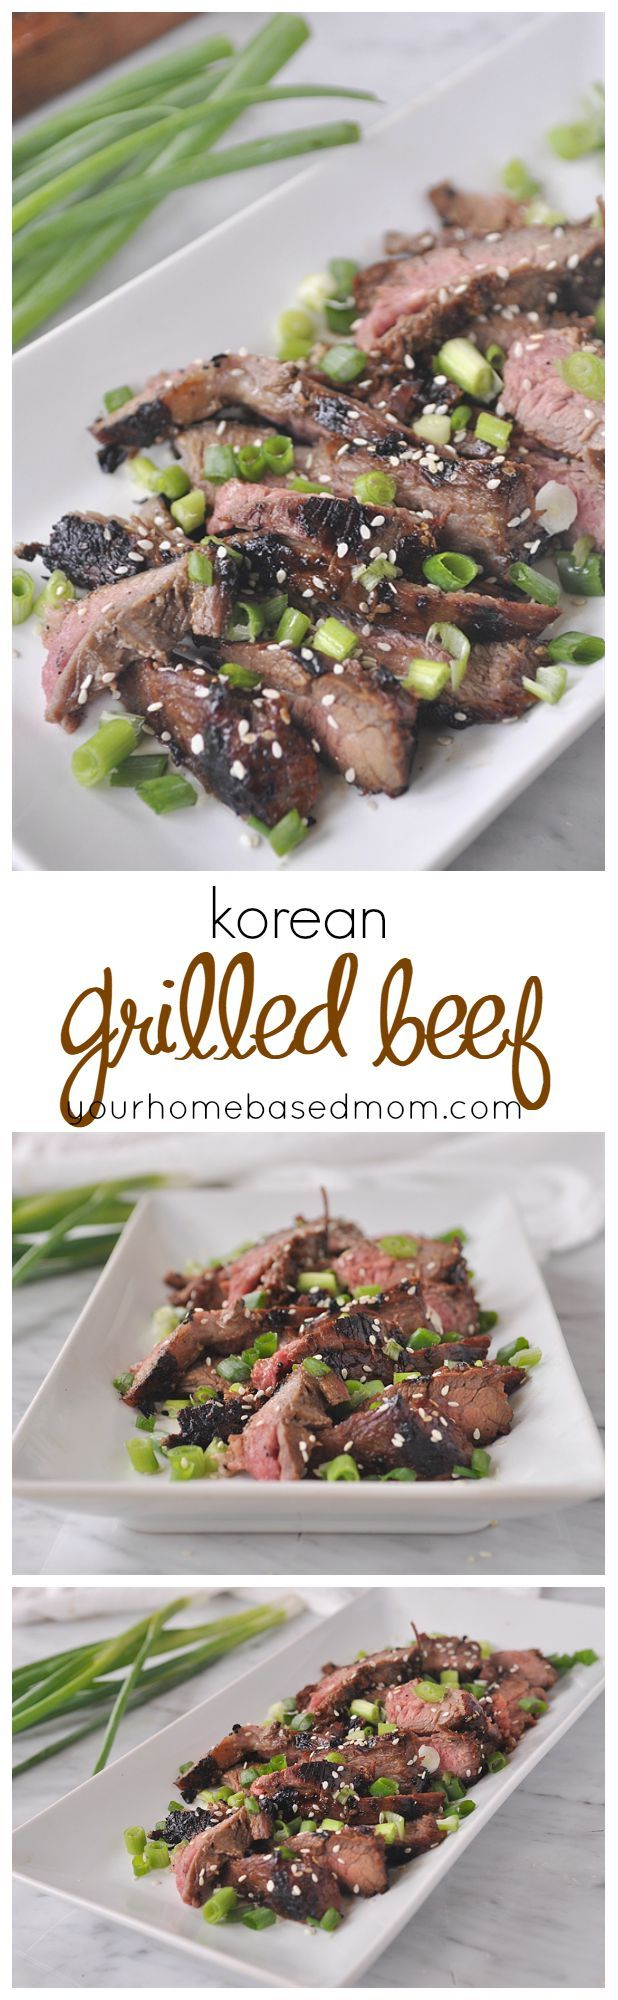 Korean Grilled Beef is the perfect thing to throw on the grill on a warm summer night.